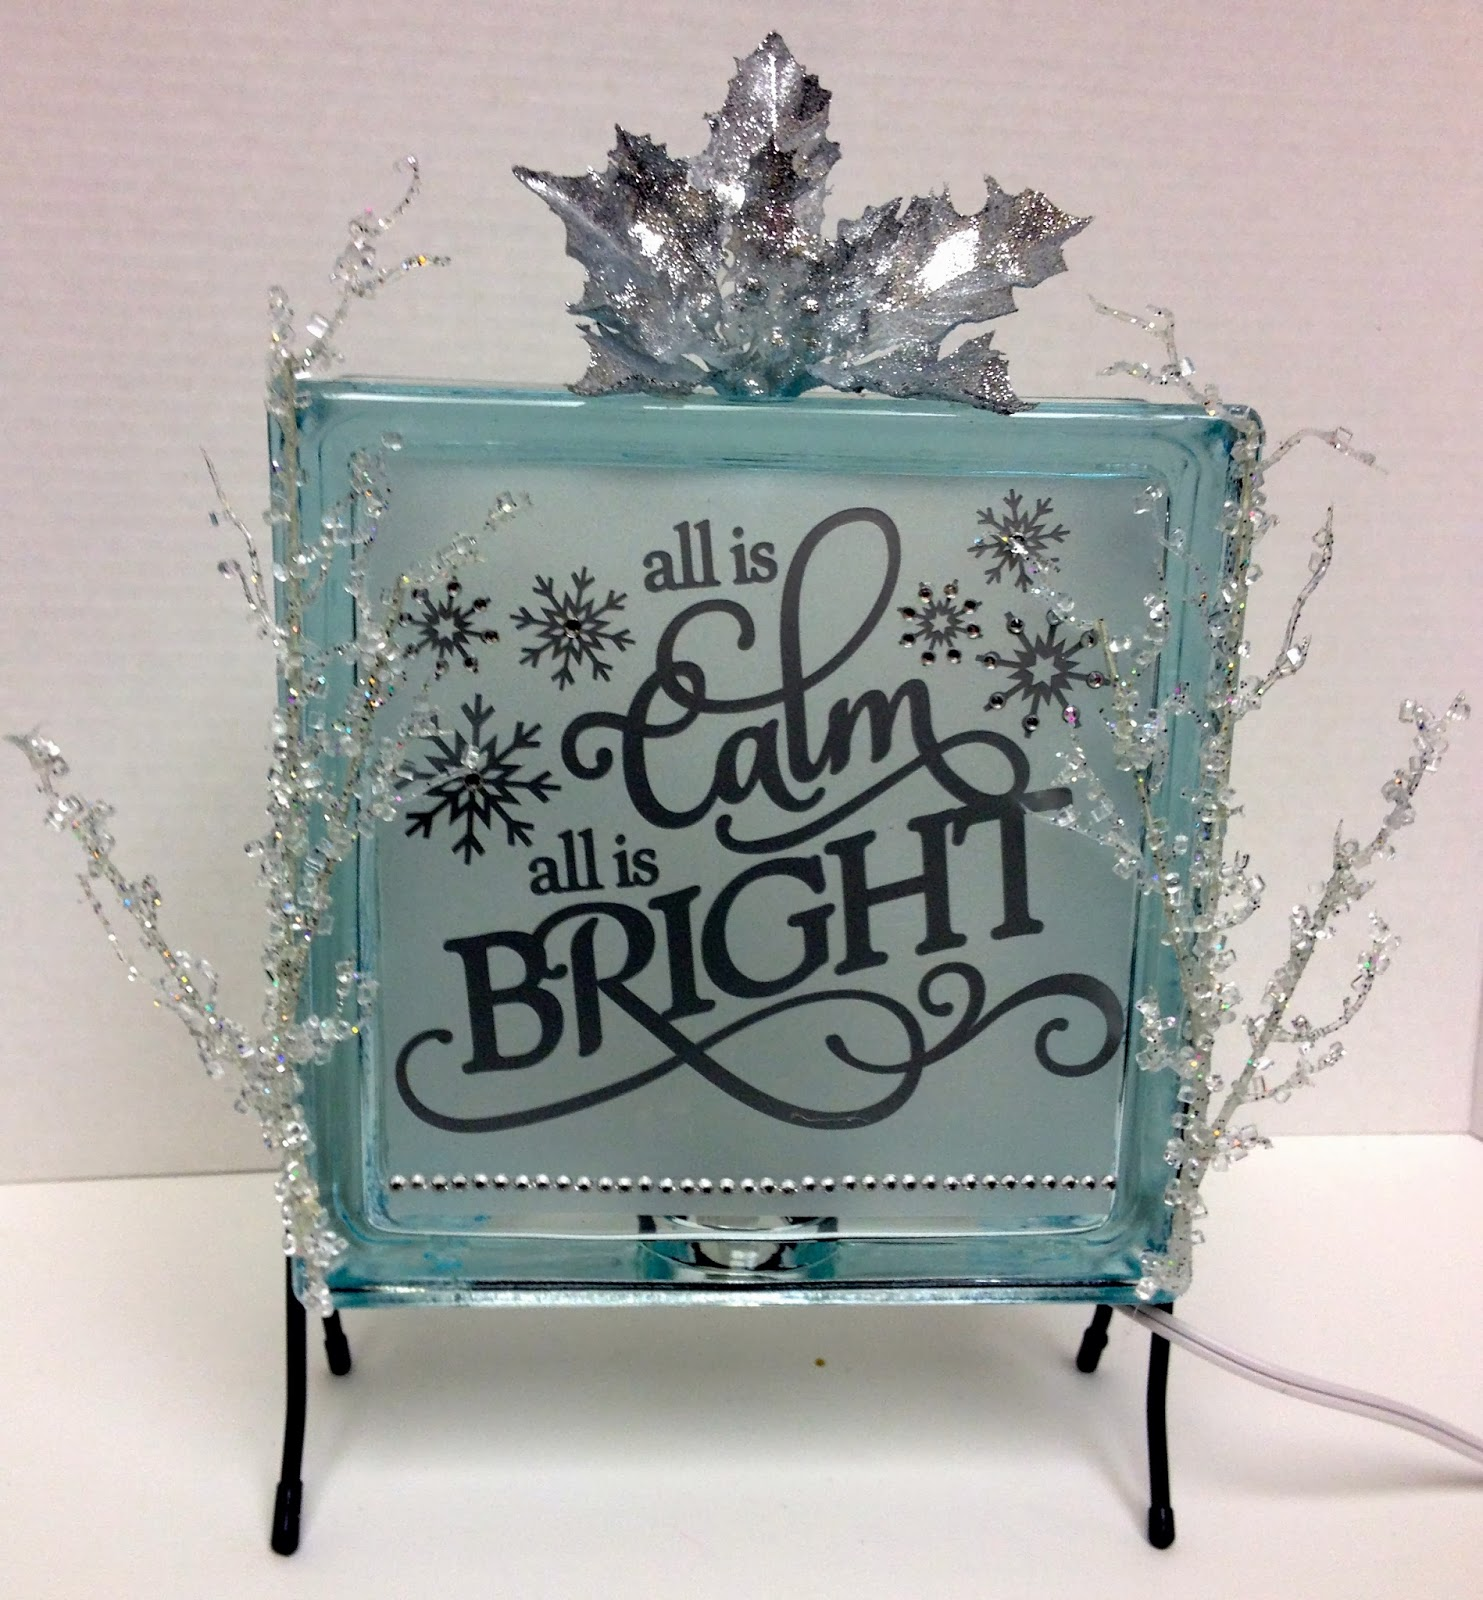 Paper craft studios new glass block ideas for Glass block crafts pictures